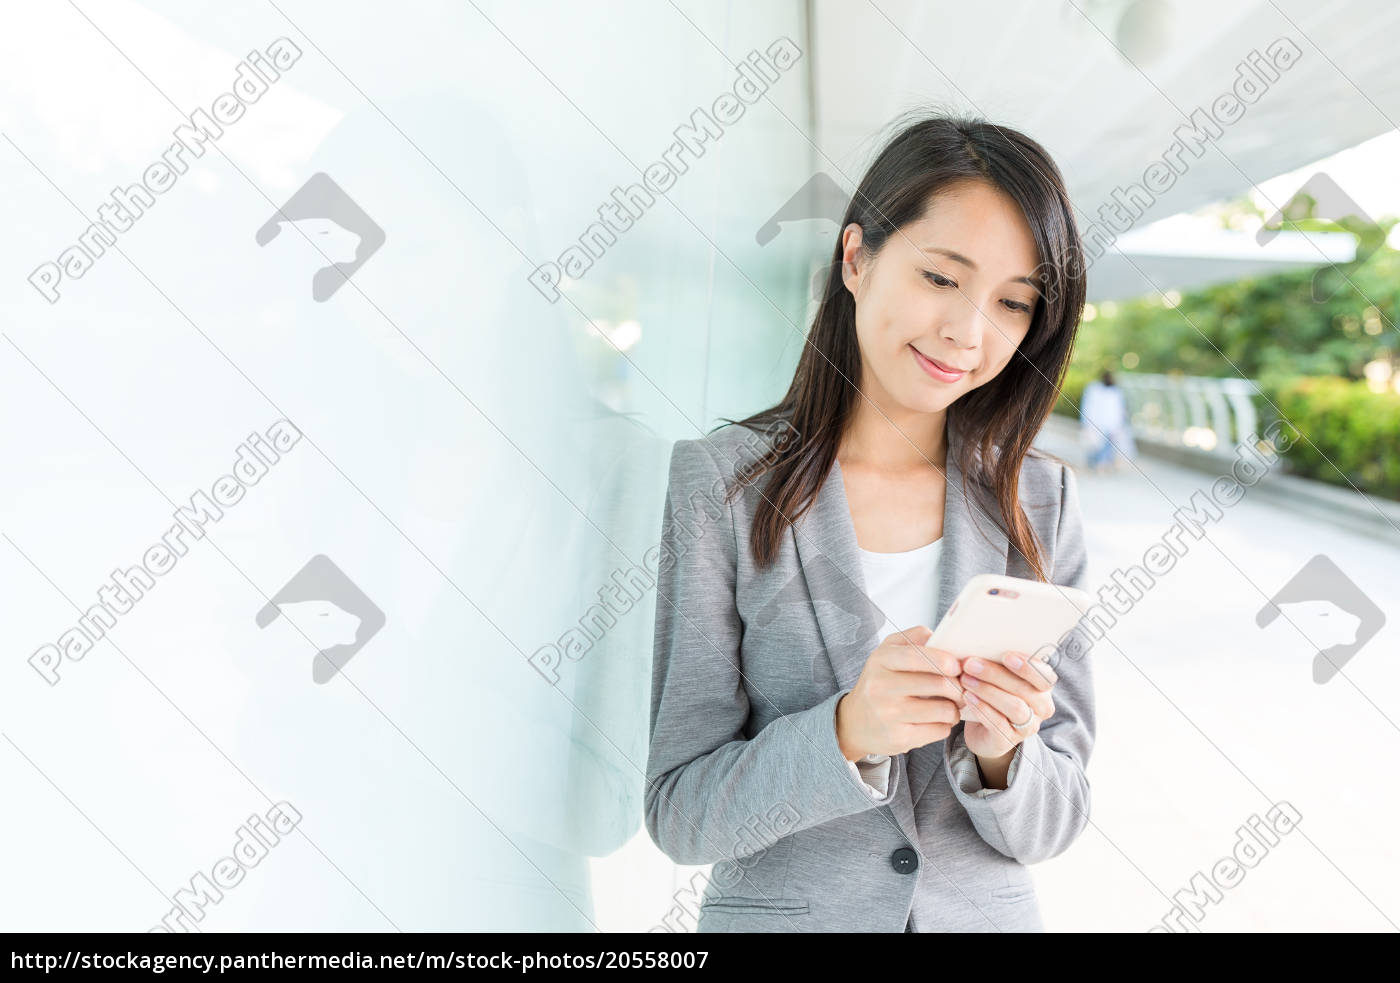 businesswoman, use, of, cellphone, at, outdoor - 20558007